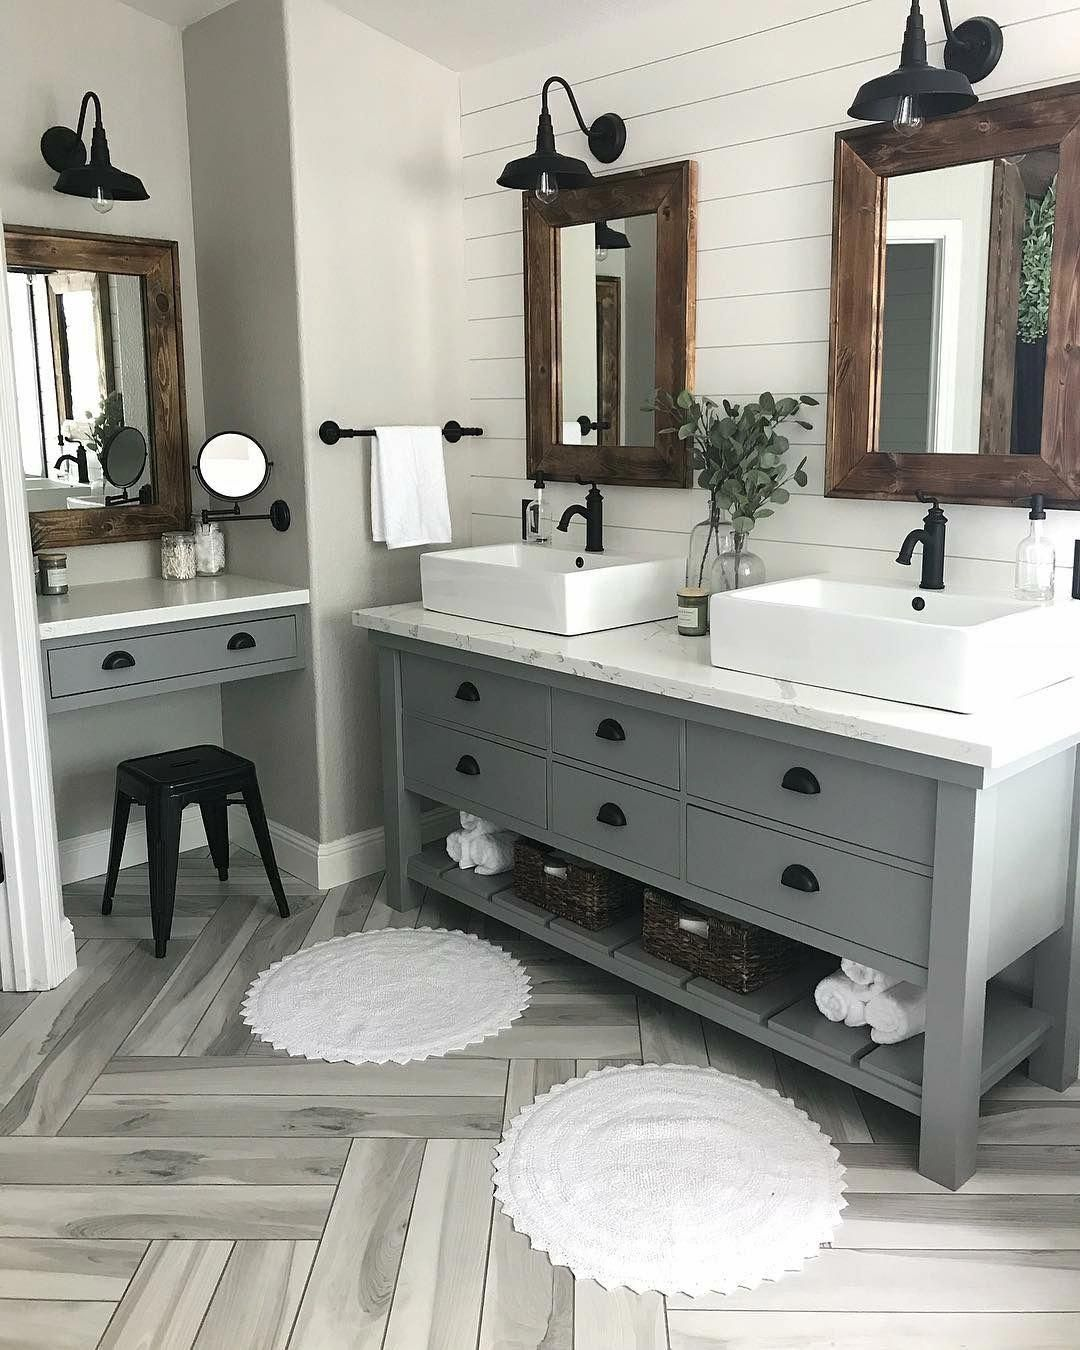 Modern Farmhouse Master Bath Renovation Obsessed with